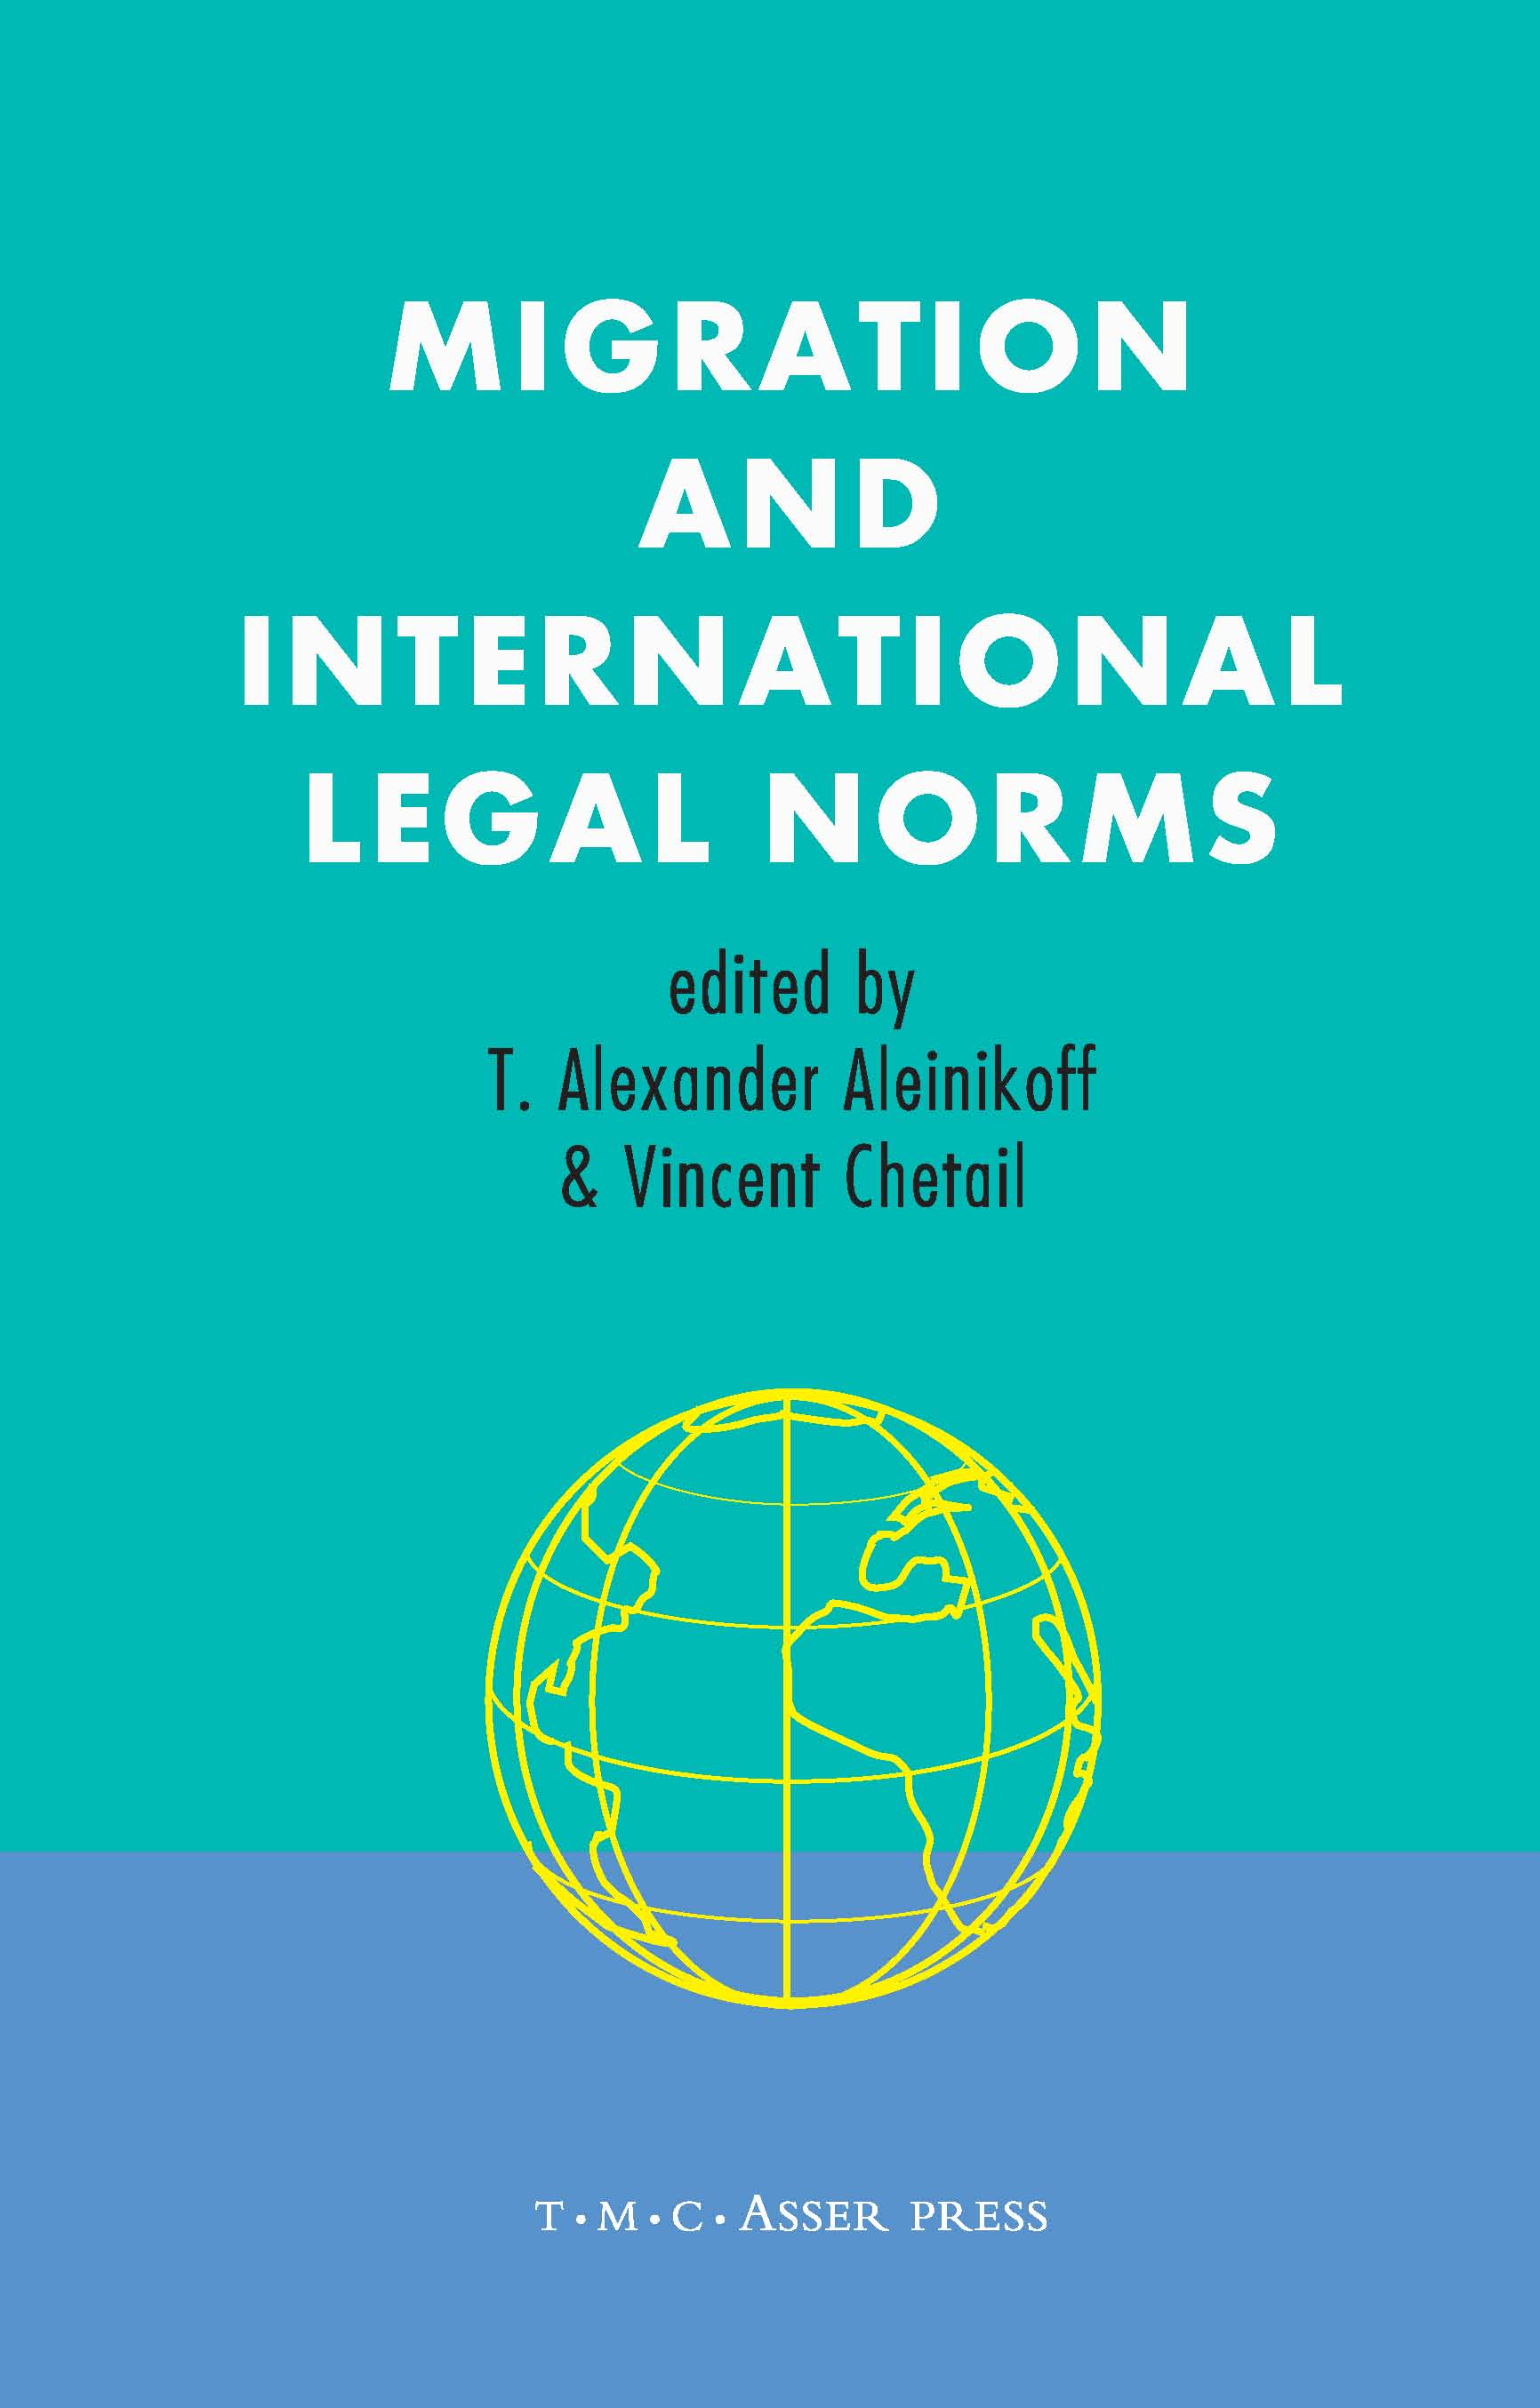 Migration and International Legal Norms